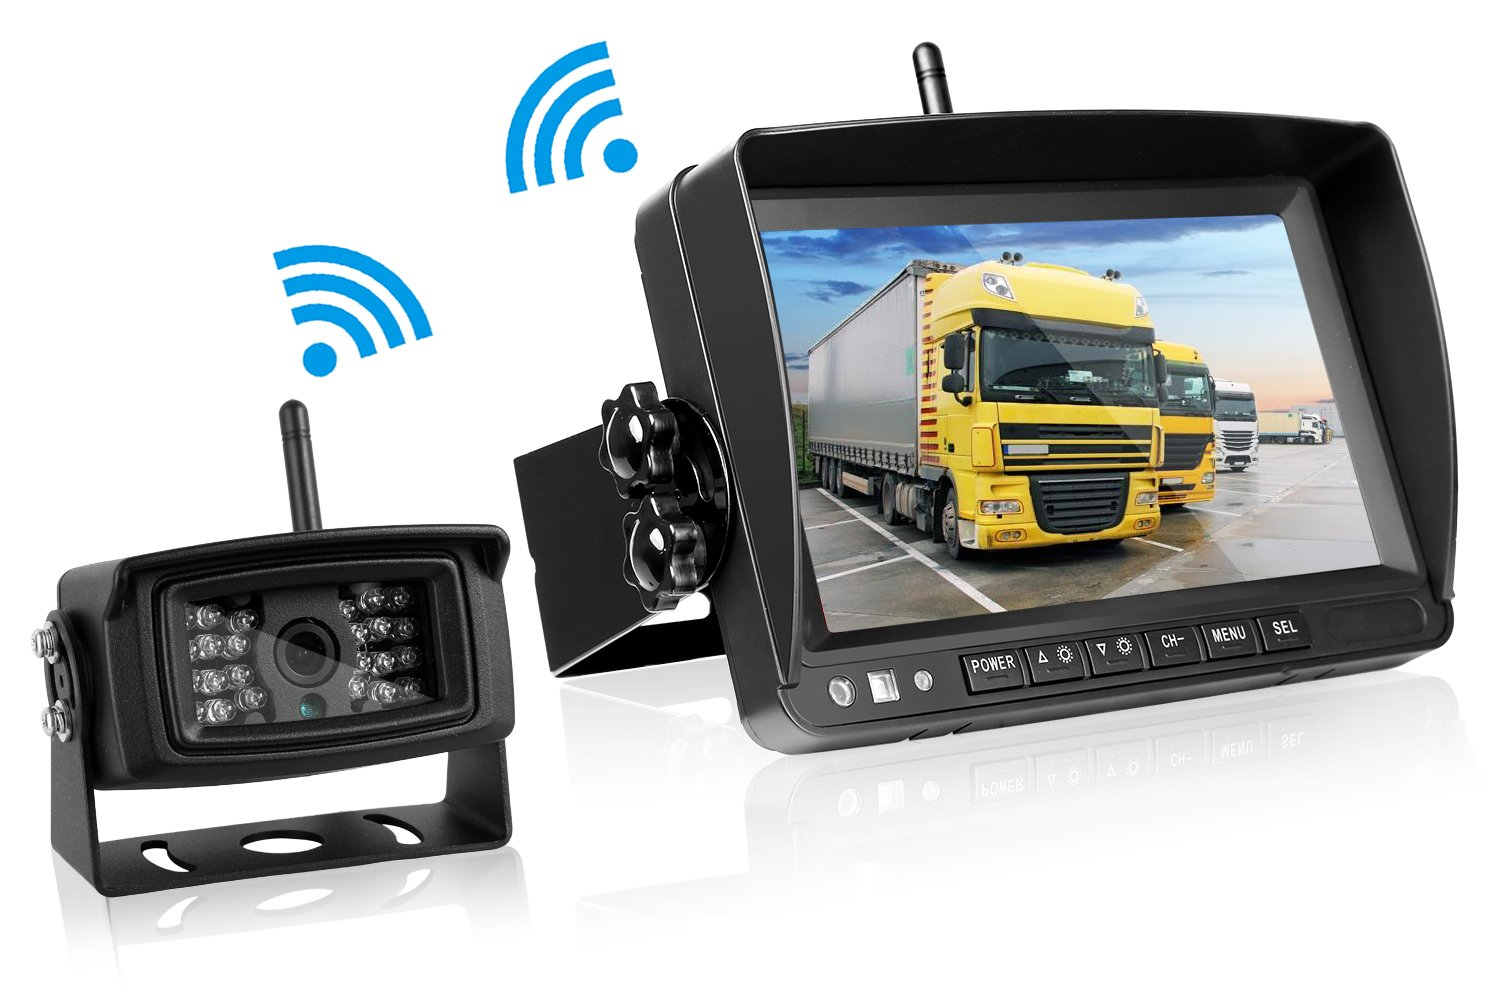 Emmako Digital Wireless Built-in Backup Camera and 7 Display Monitor Reverse Camera System Kit Working Over 300 ft Stable Signal Grid Lines Optional Waterproof Night Vision for Trailer/RV/5th Wheel